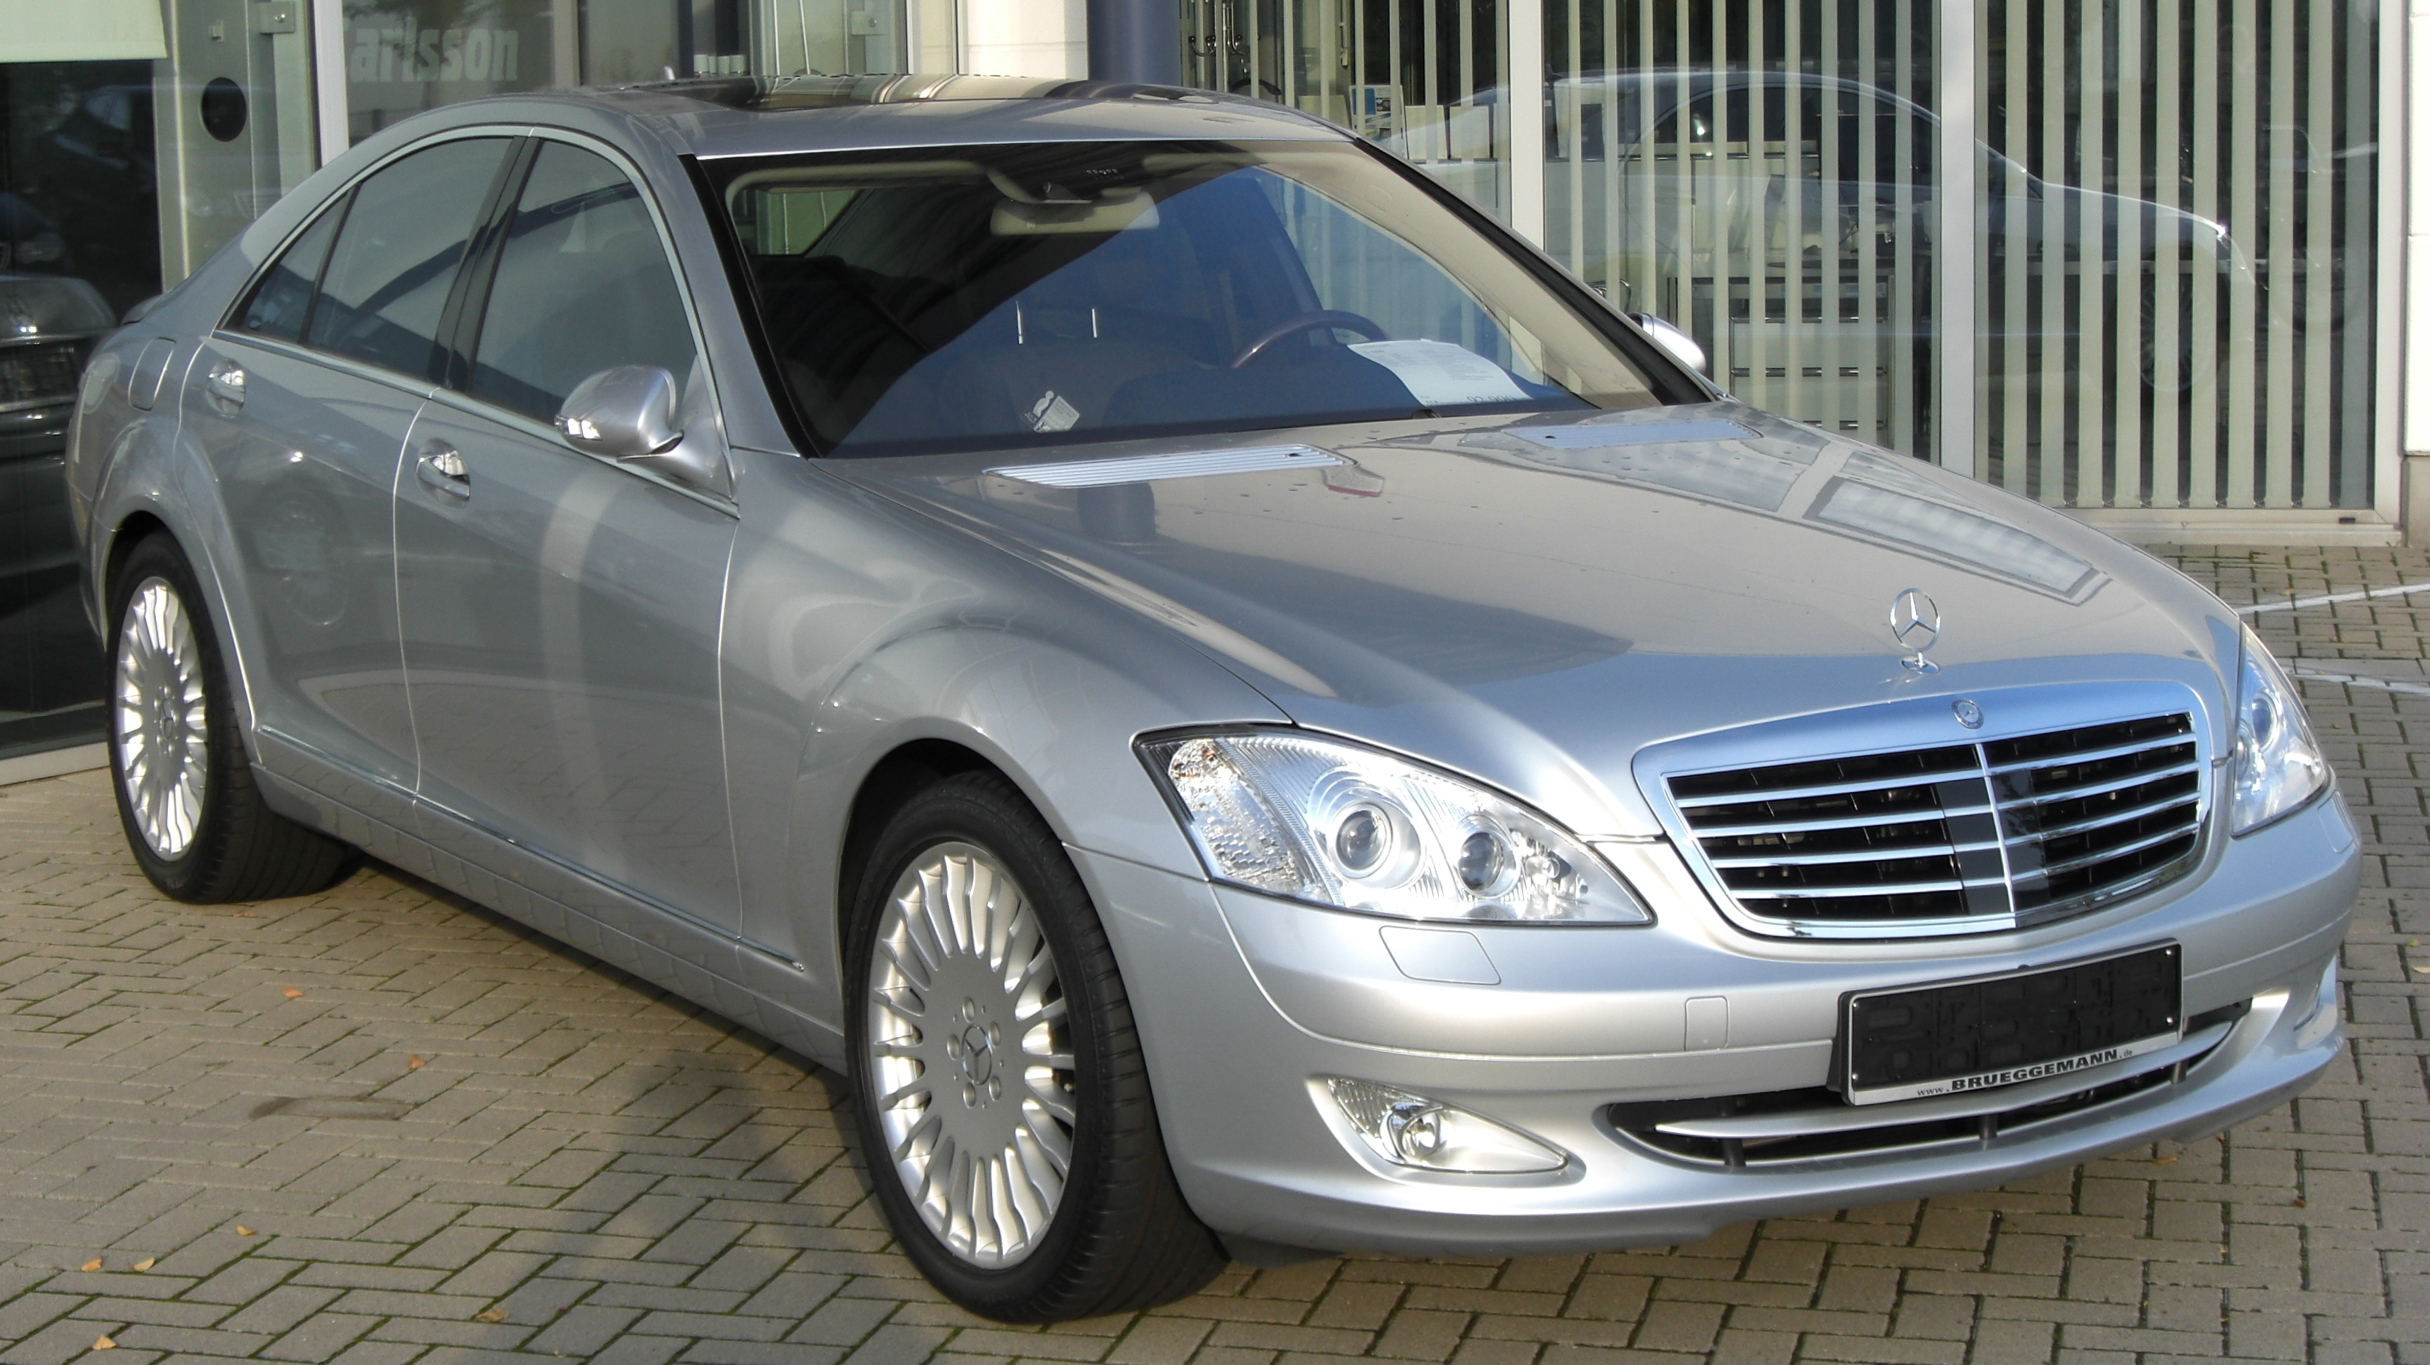 Mercedes Benz S500 2003 Review Amazing Pictures And